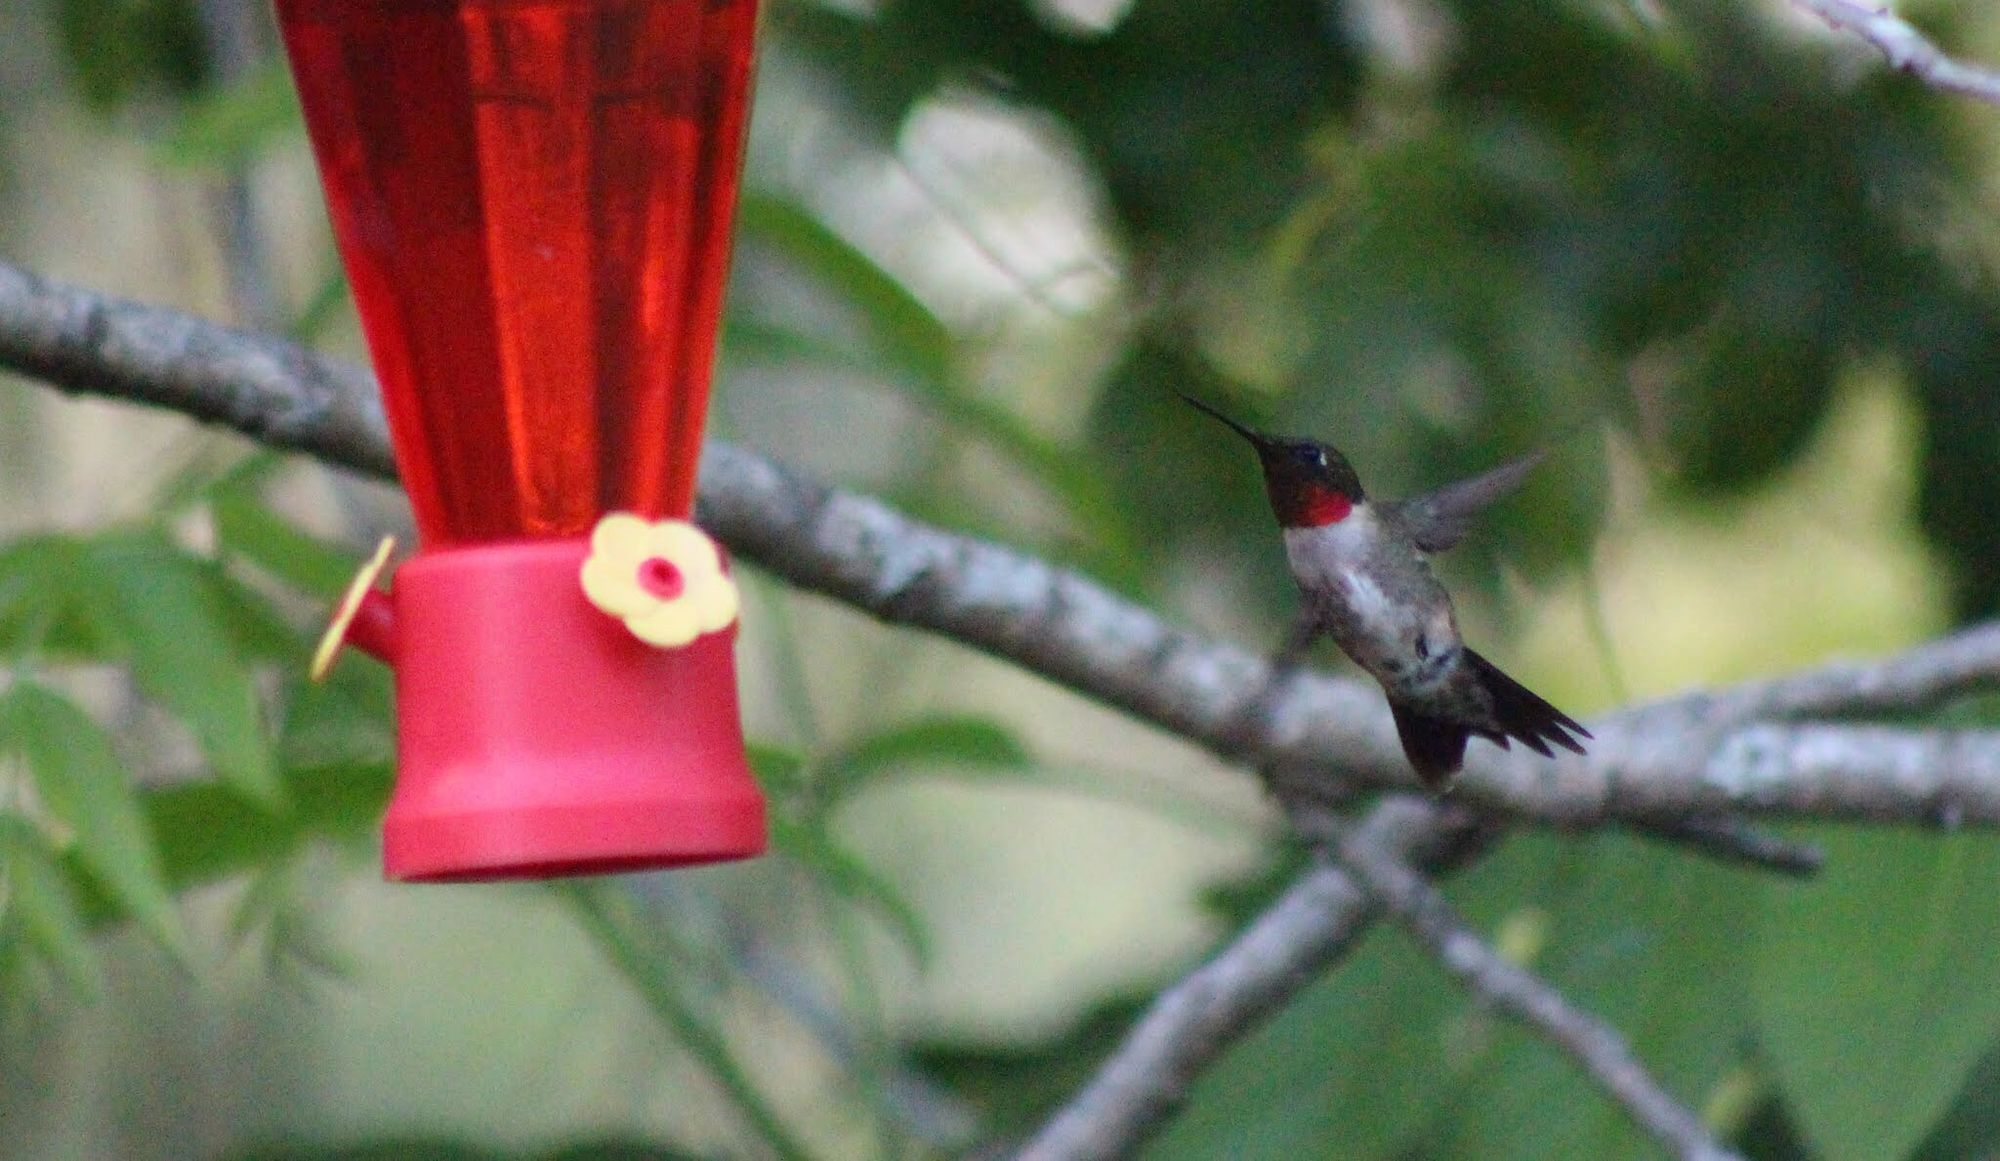 Hummingbird Bird Photography Ornithology  Birdwatching Ruby-throated Hummingbird Archilochus Colubris Male Bird God's Beauty Beautiful Nature Backyard